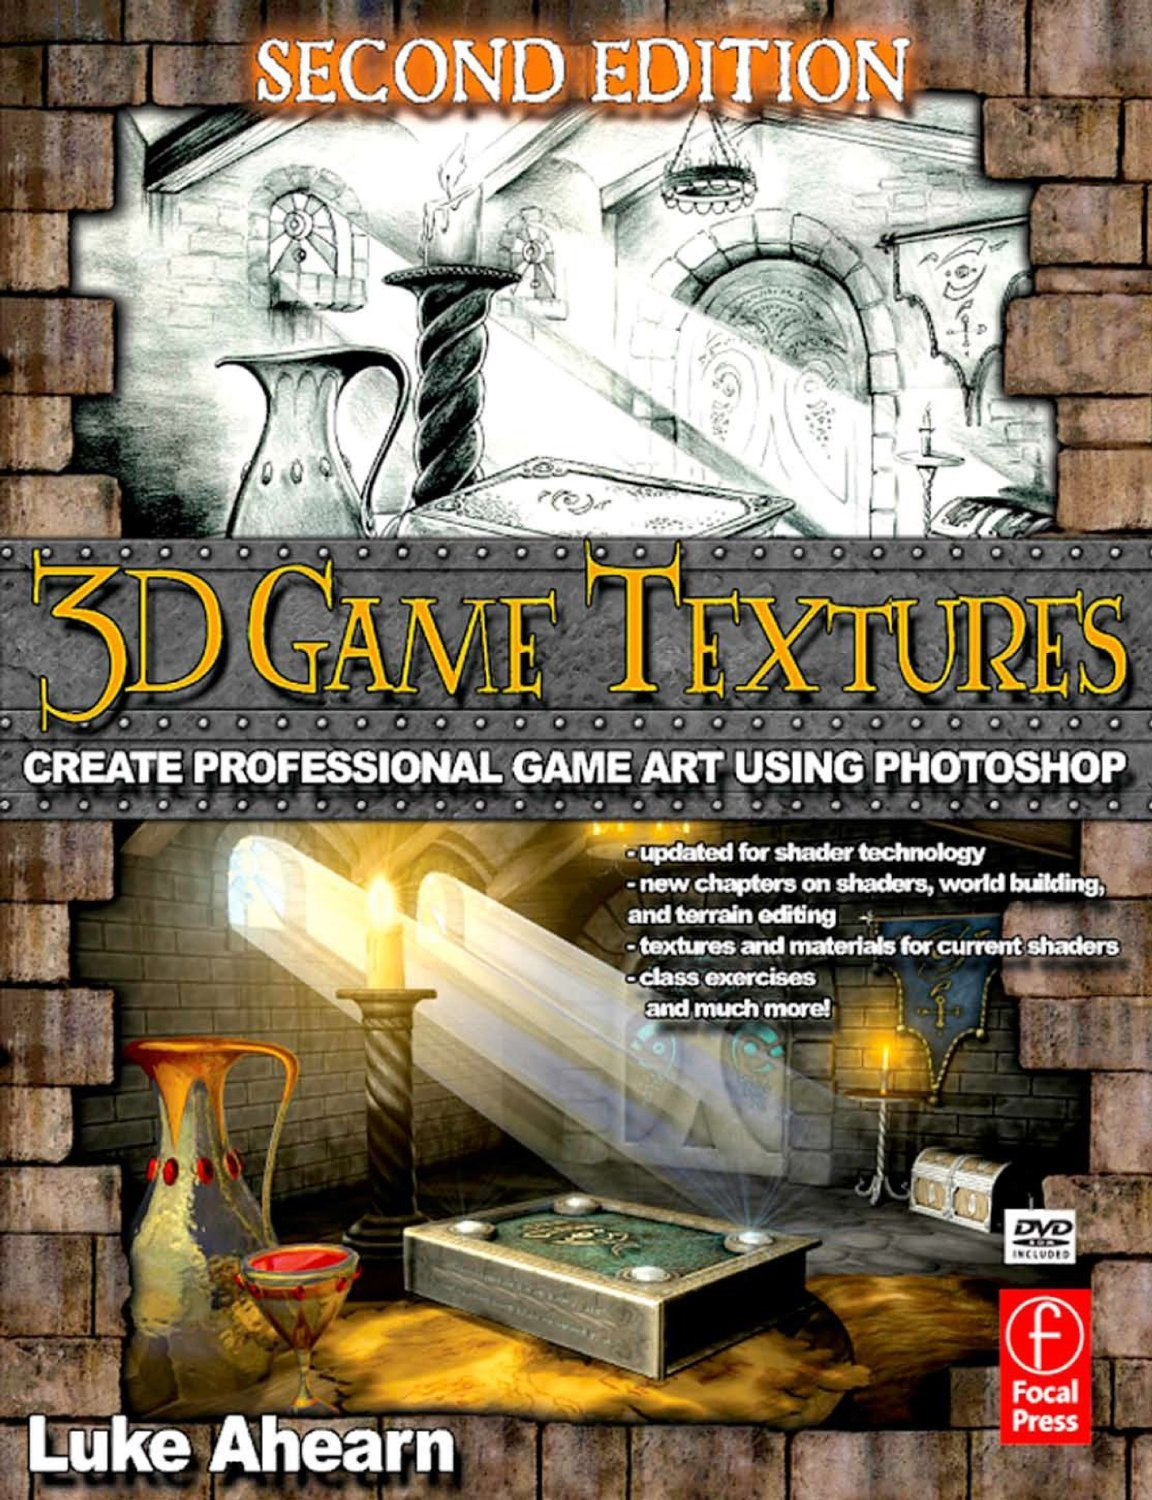 d game textures create professional game art using photoshop 3d game textures create professional game art using photoshop amazon co uk luke ahearn 9780240811482 books